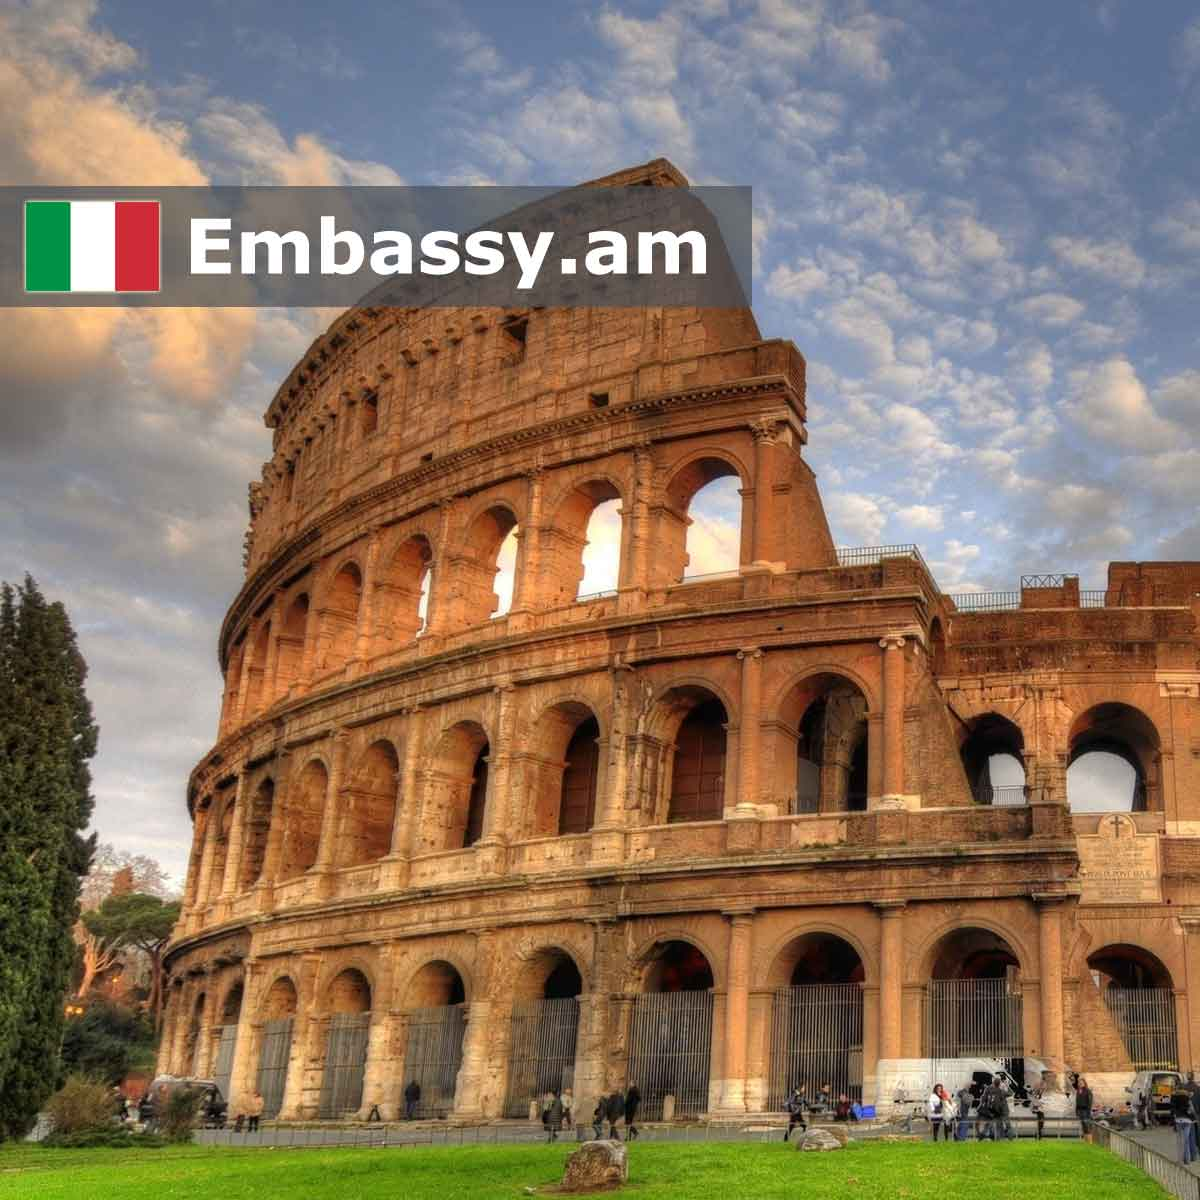 Hotels in Italy - Embassy.am